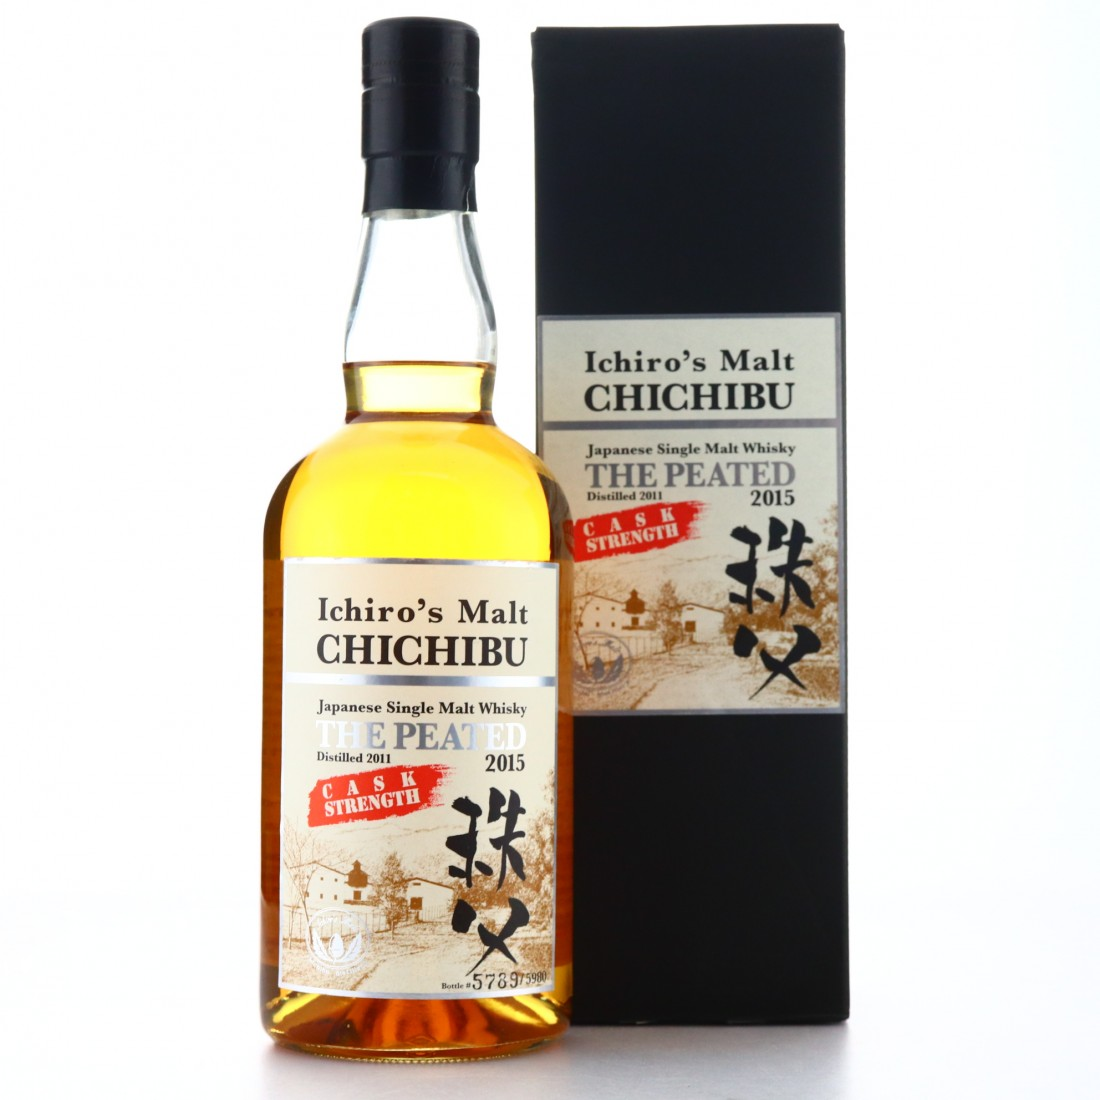 Chichibu 2011 The Peated 2015 / Cask Strength